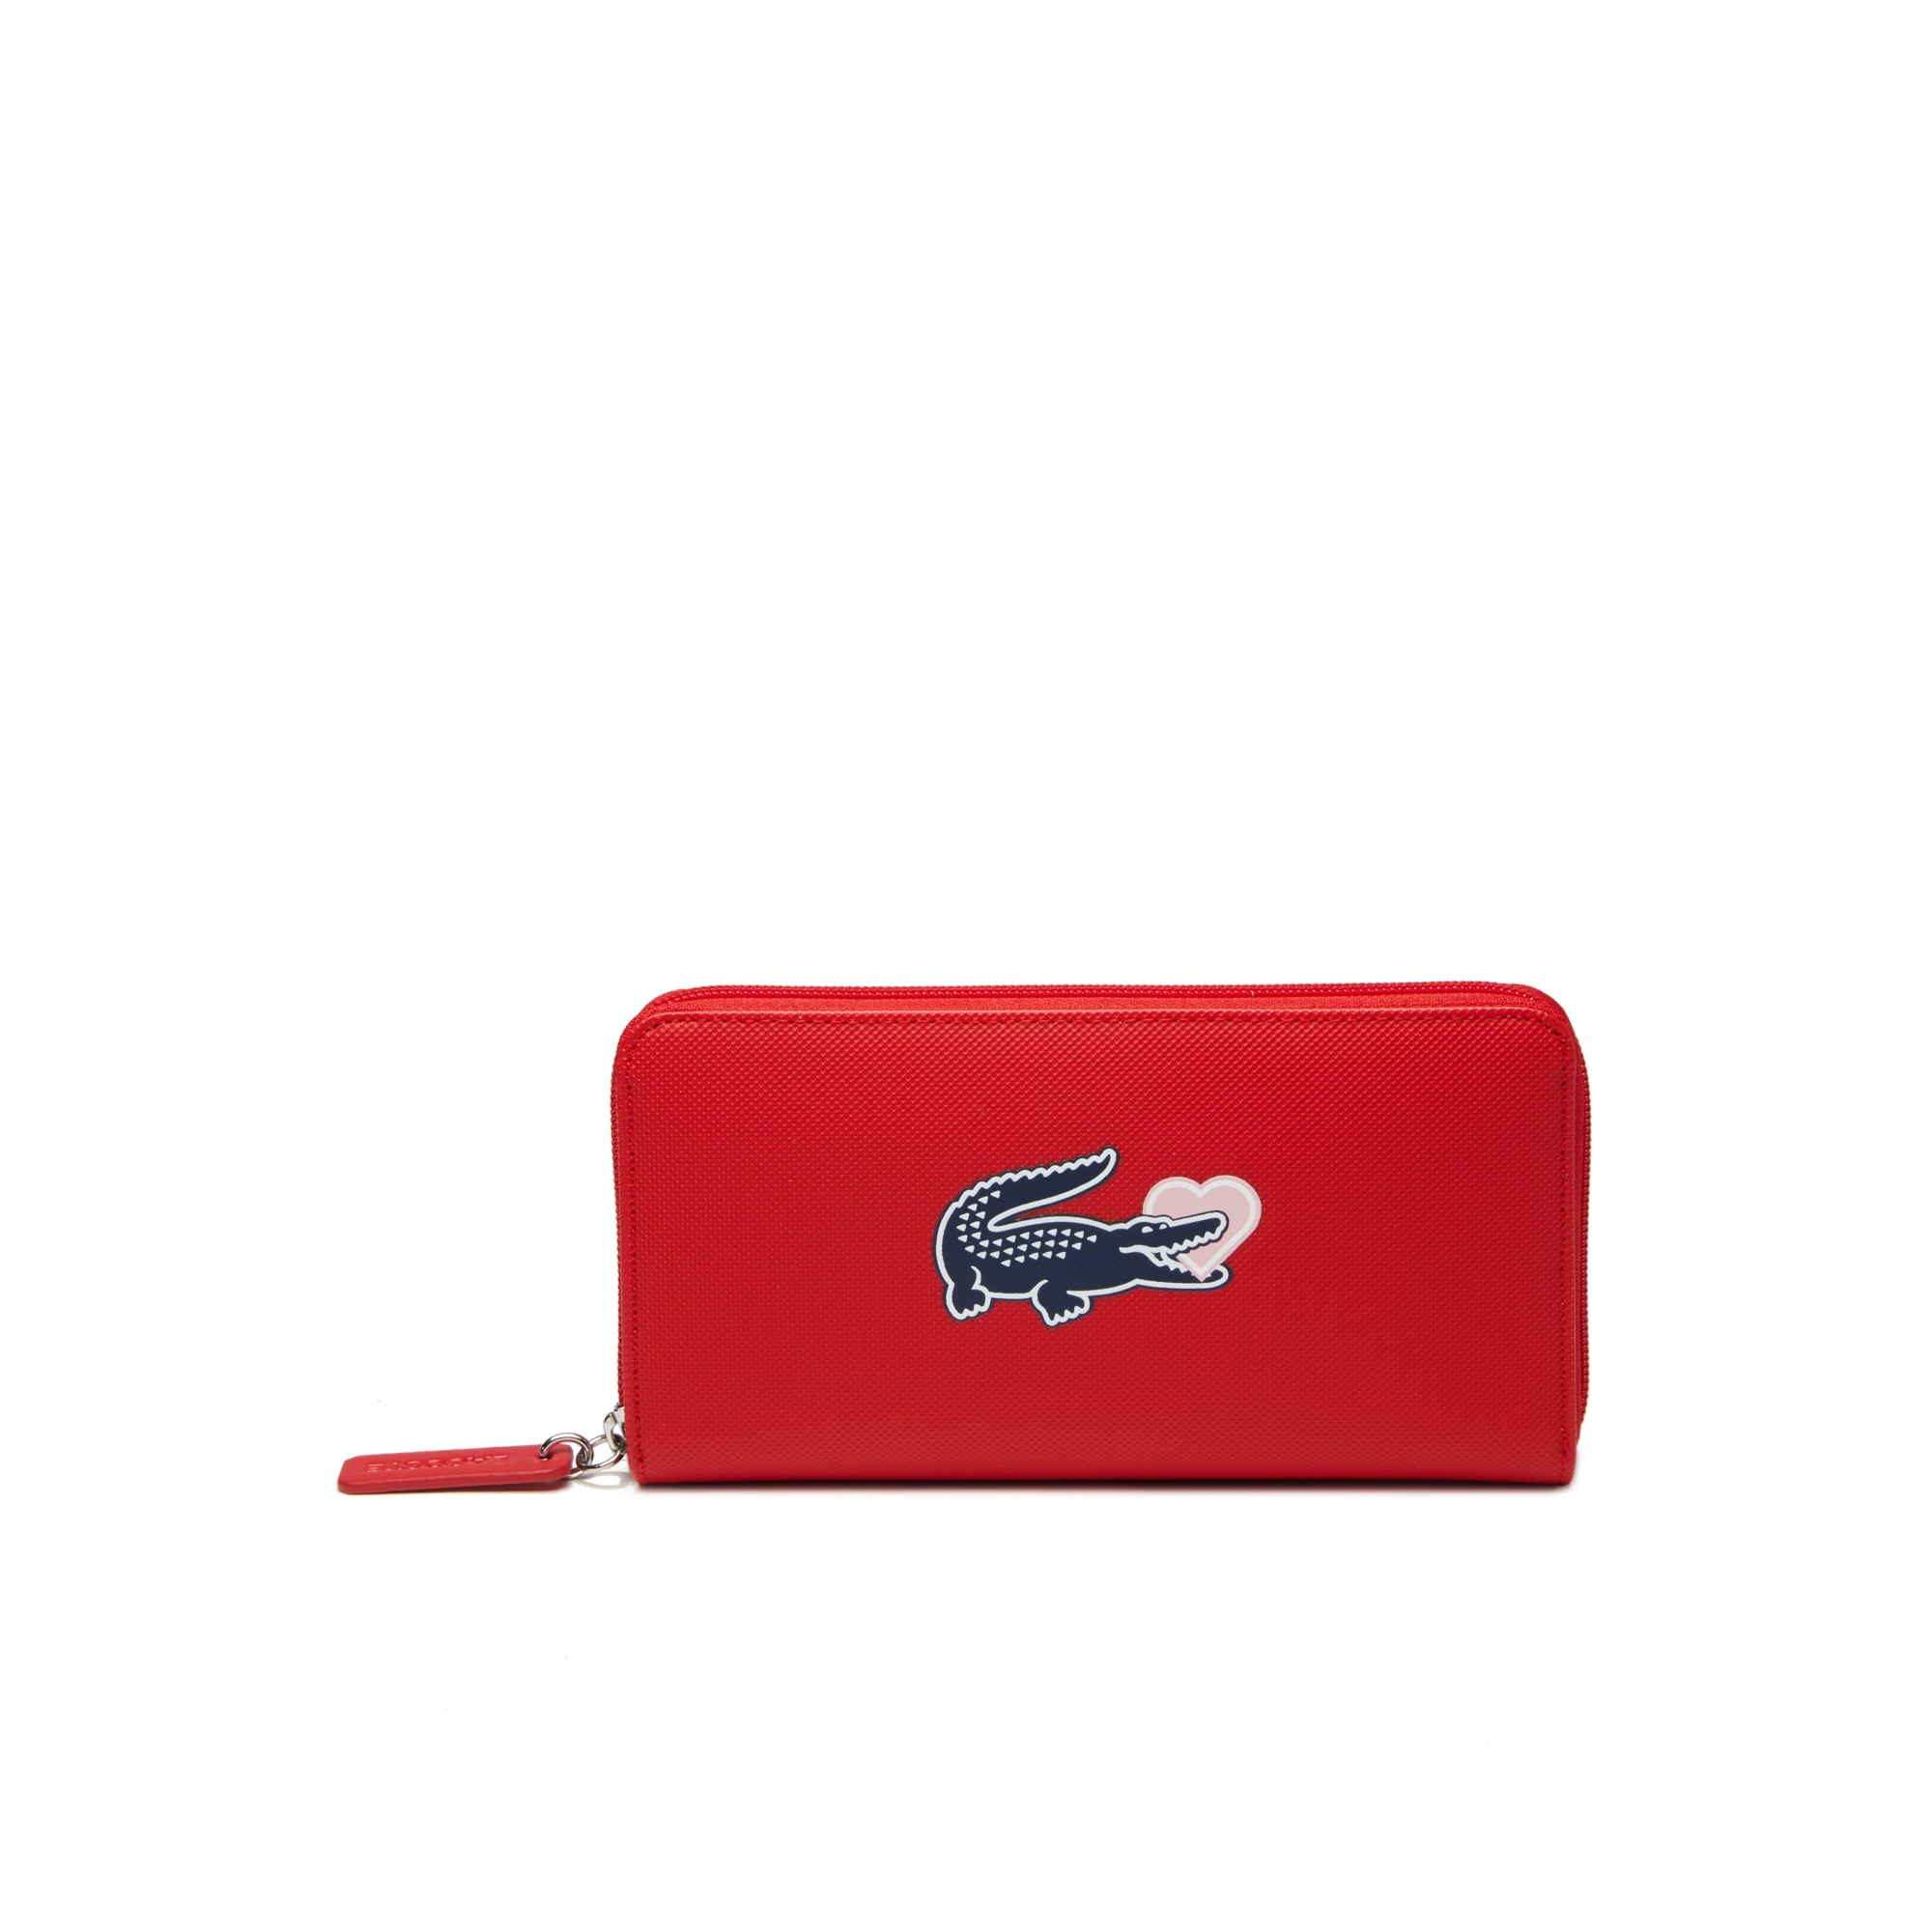 Women's L.12.12 Concept Croc Heart Zip Wallet